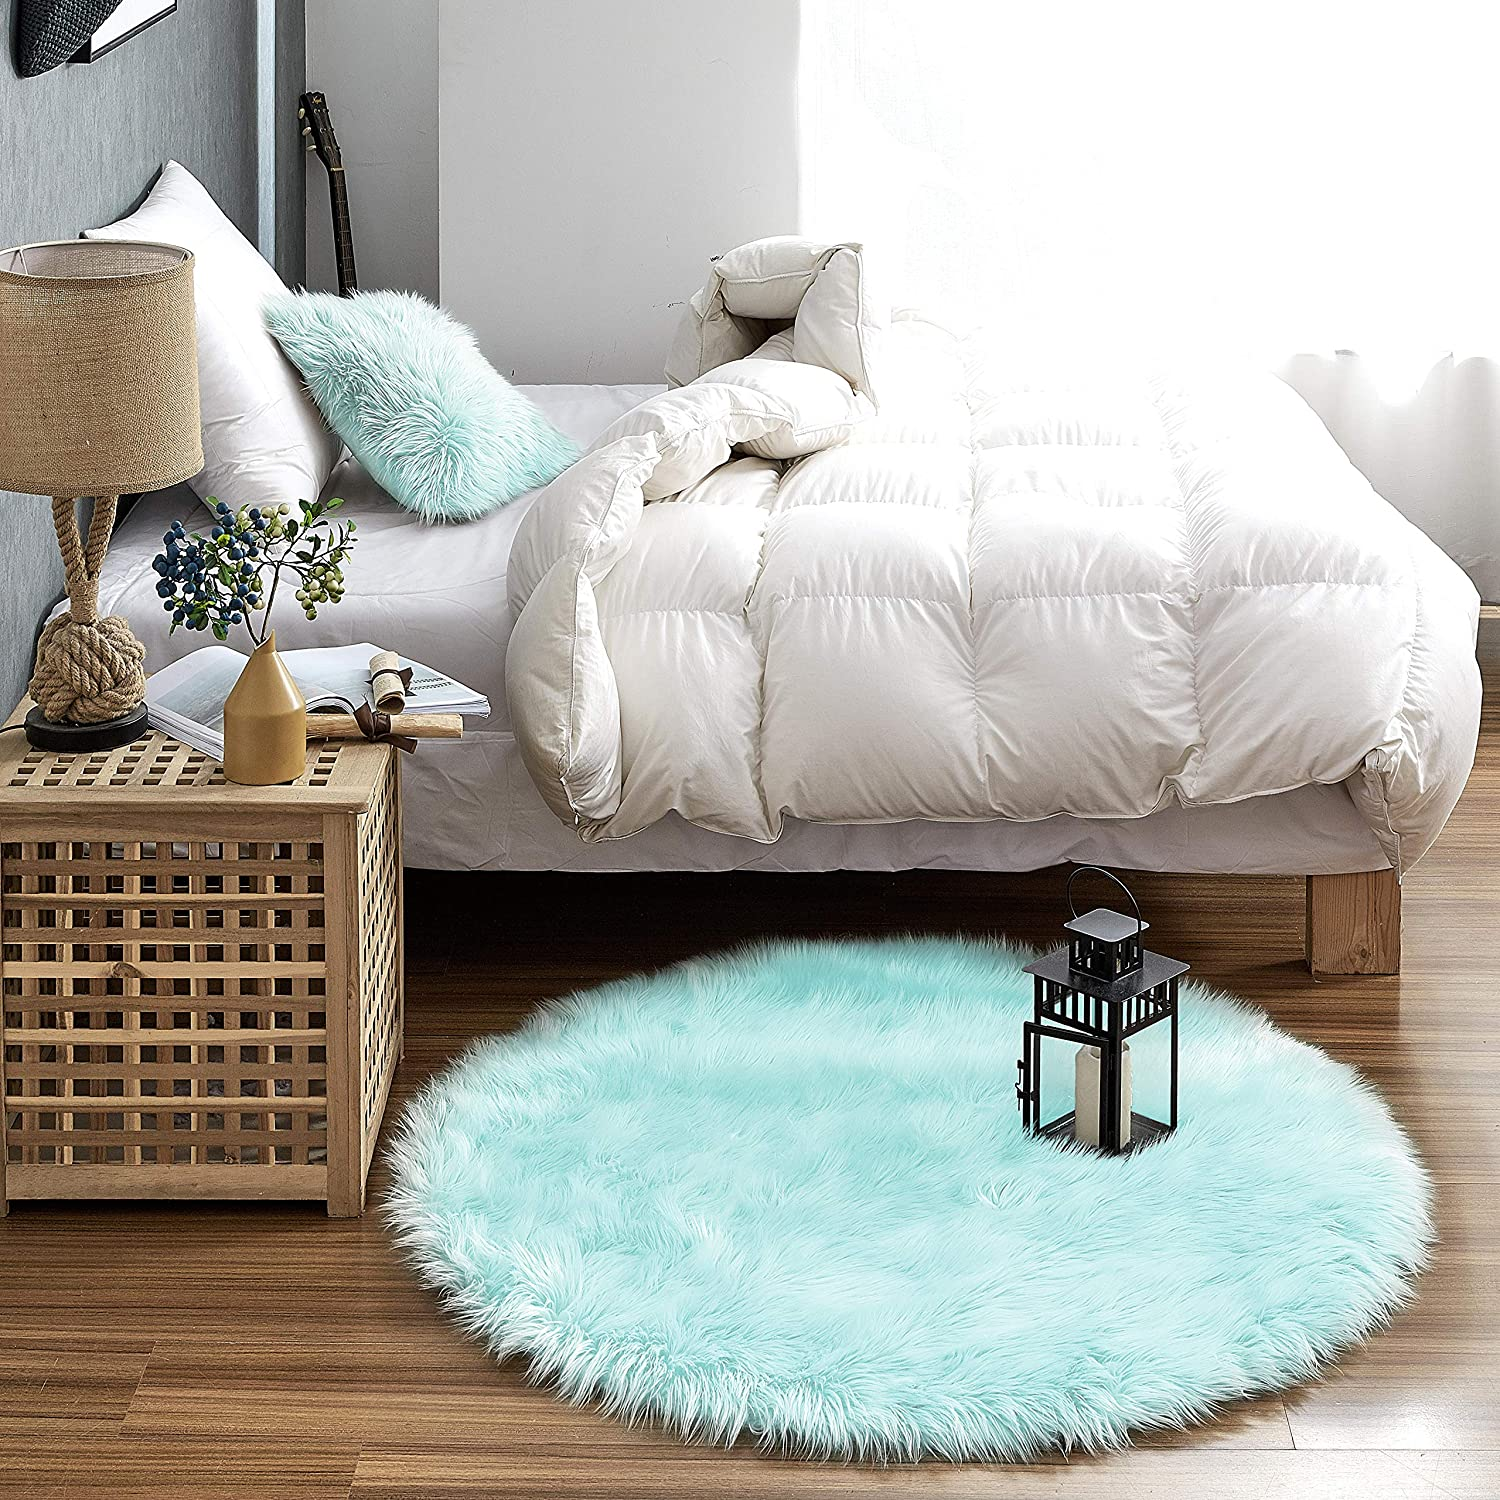 Stools and Couches Mocha 90 cm Fluffy Rug for the Bedroom Living Room or Nursery Lambskin Fur Rug Furry Carpet or Throw for Chairs Round Teppich W/ölkchen Faux Sheepskin